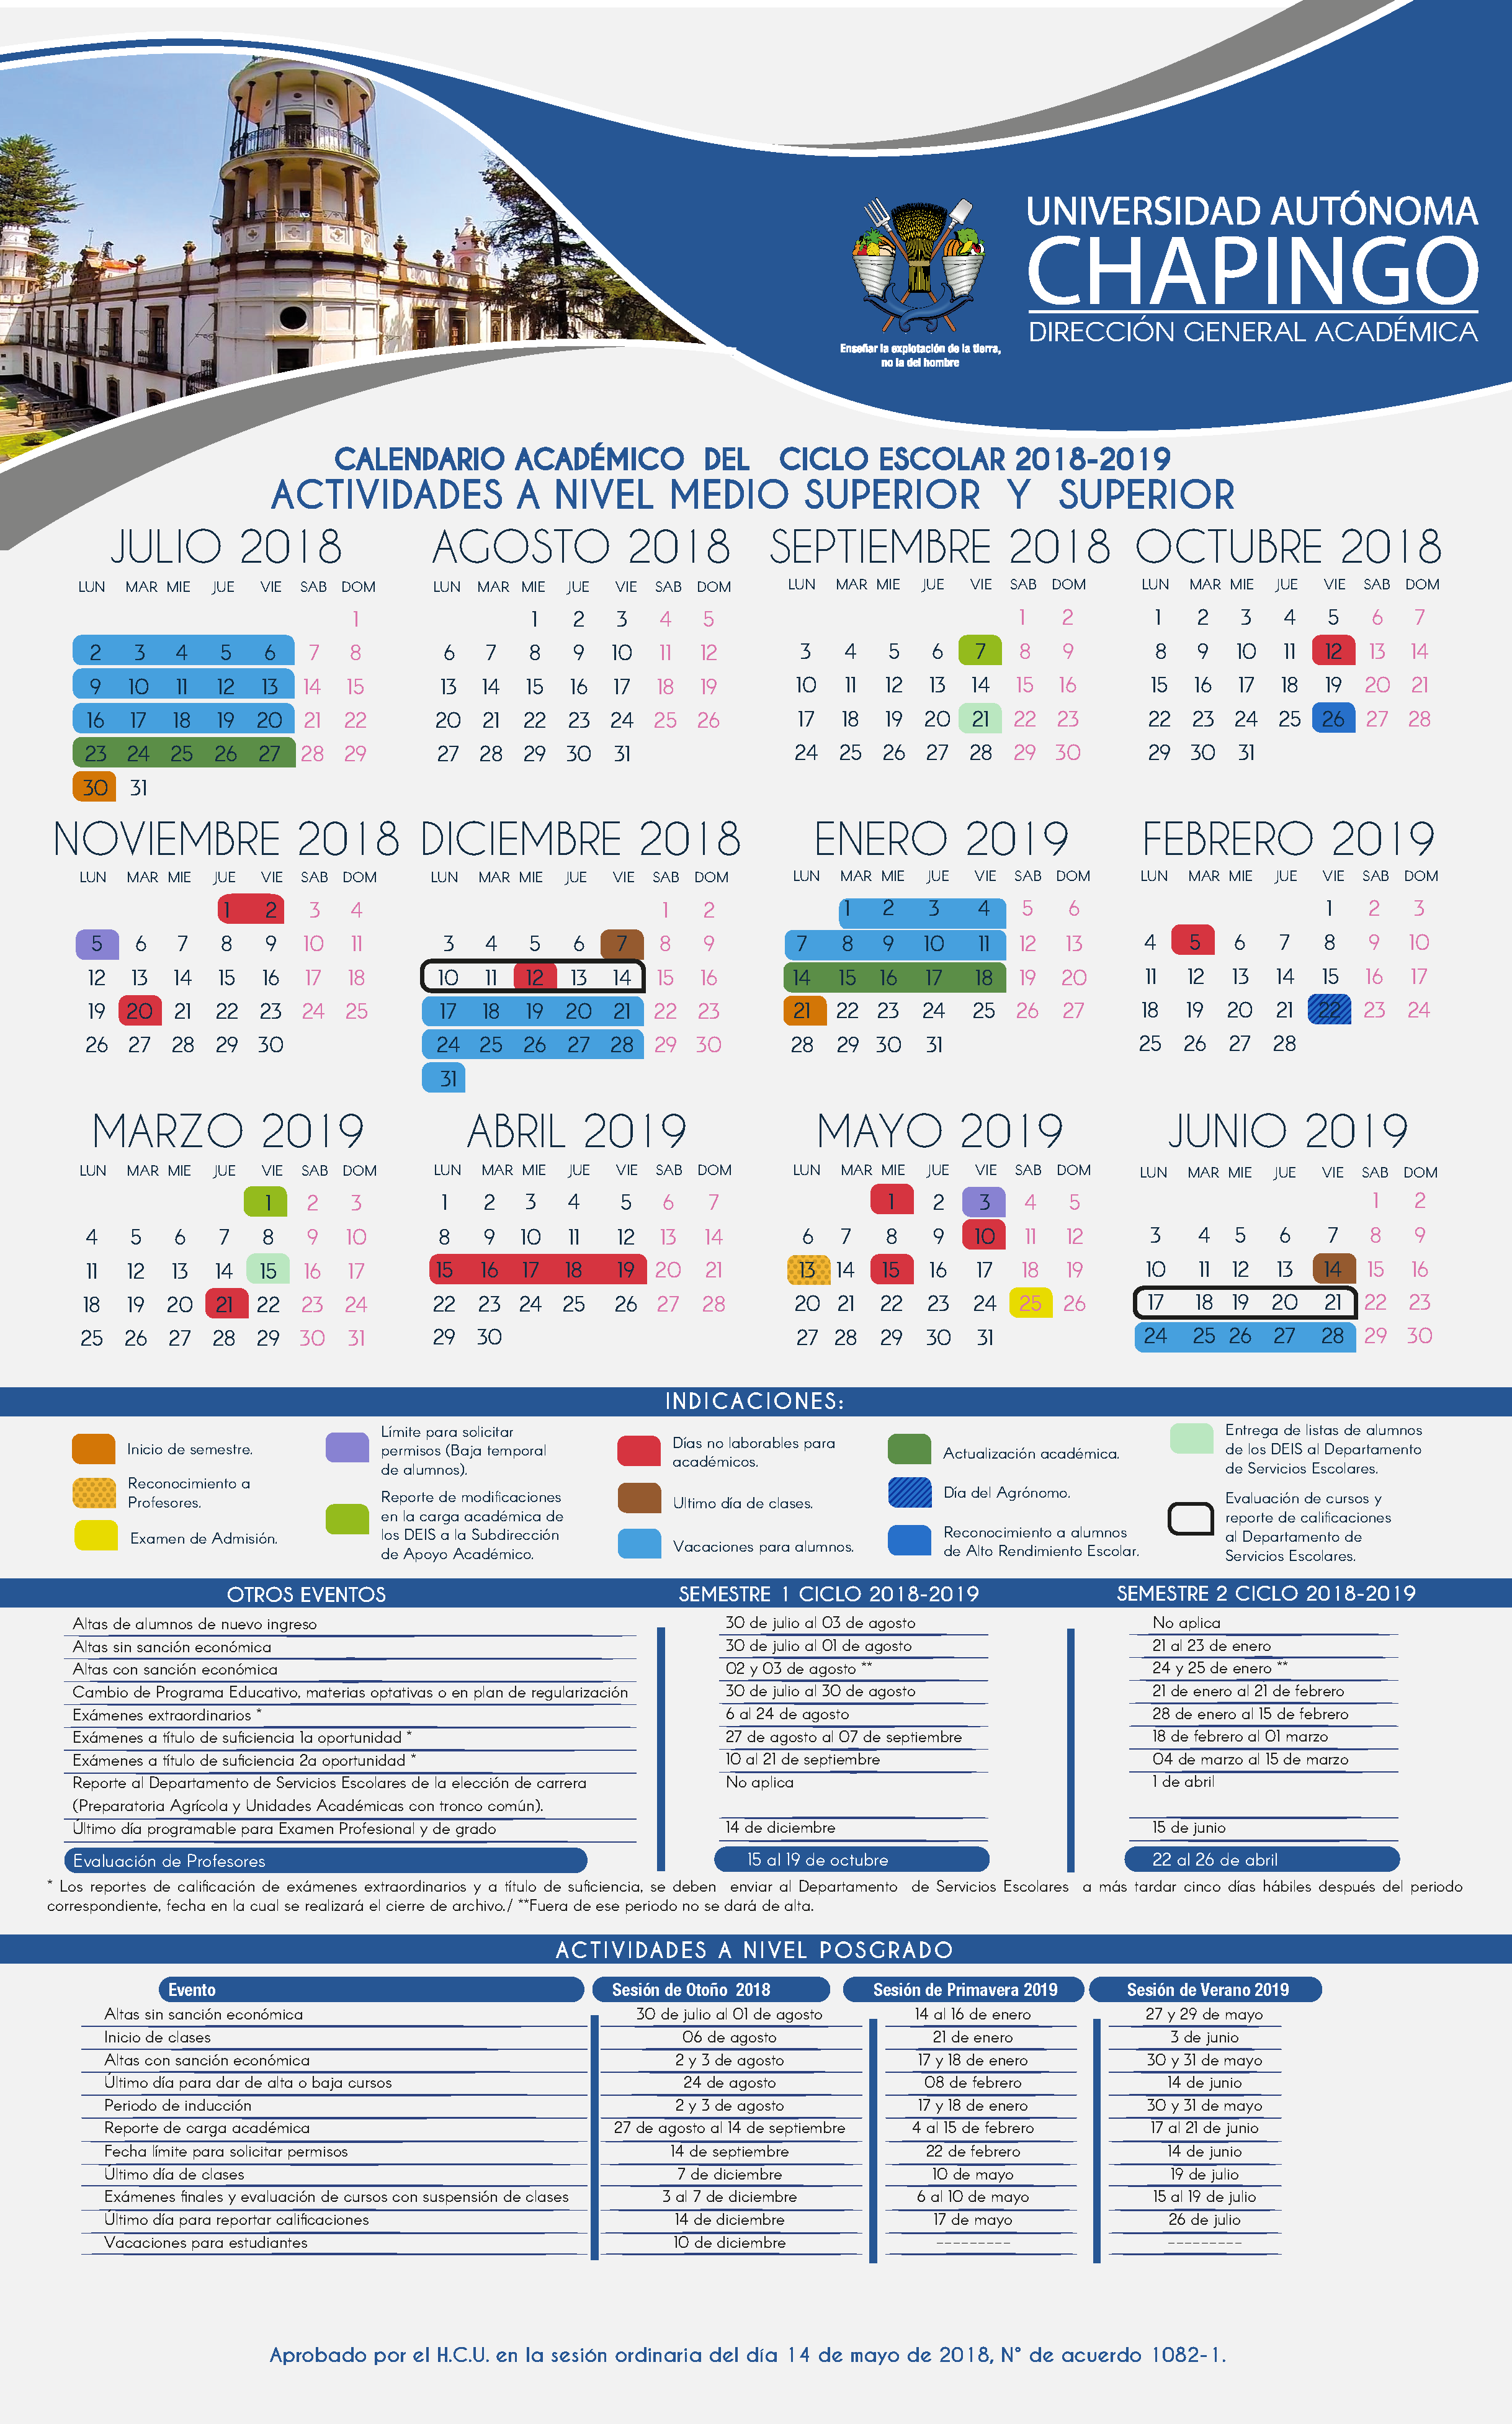 Calendario Laboral Ua.Calendario Escolar 2018 2019 Universidad Autonoma Chapingo